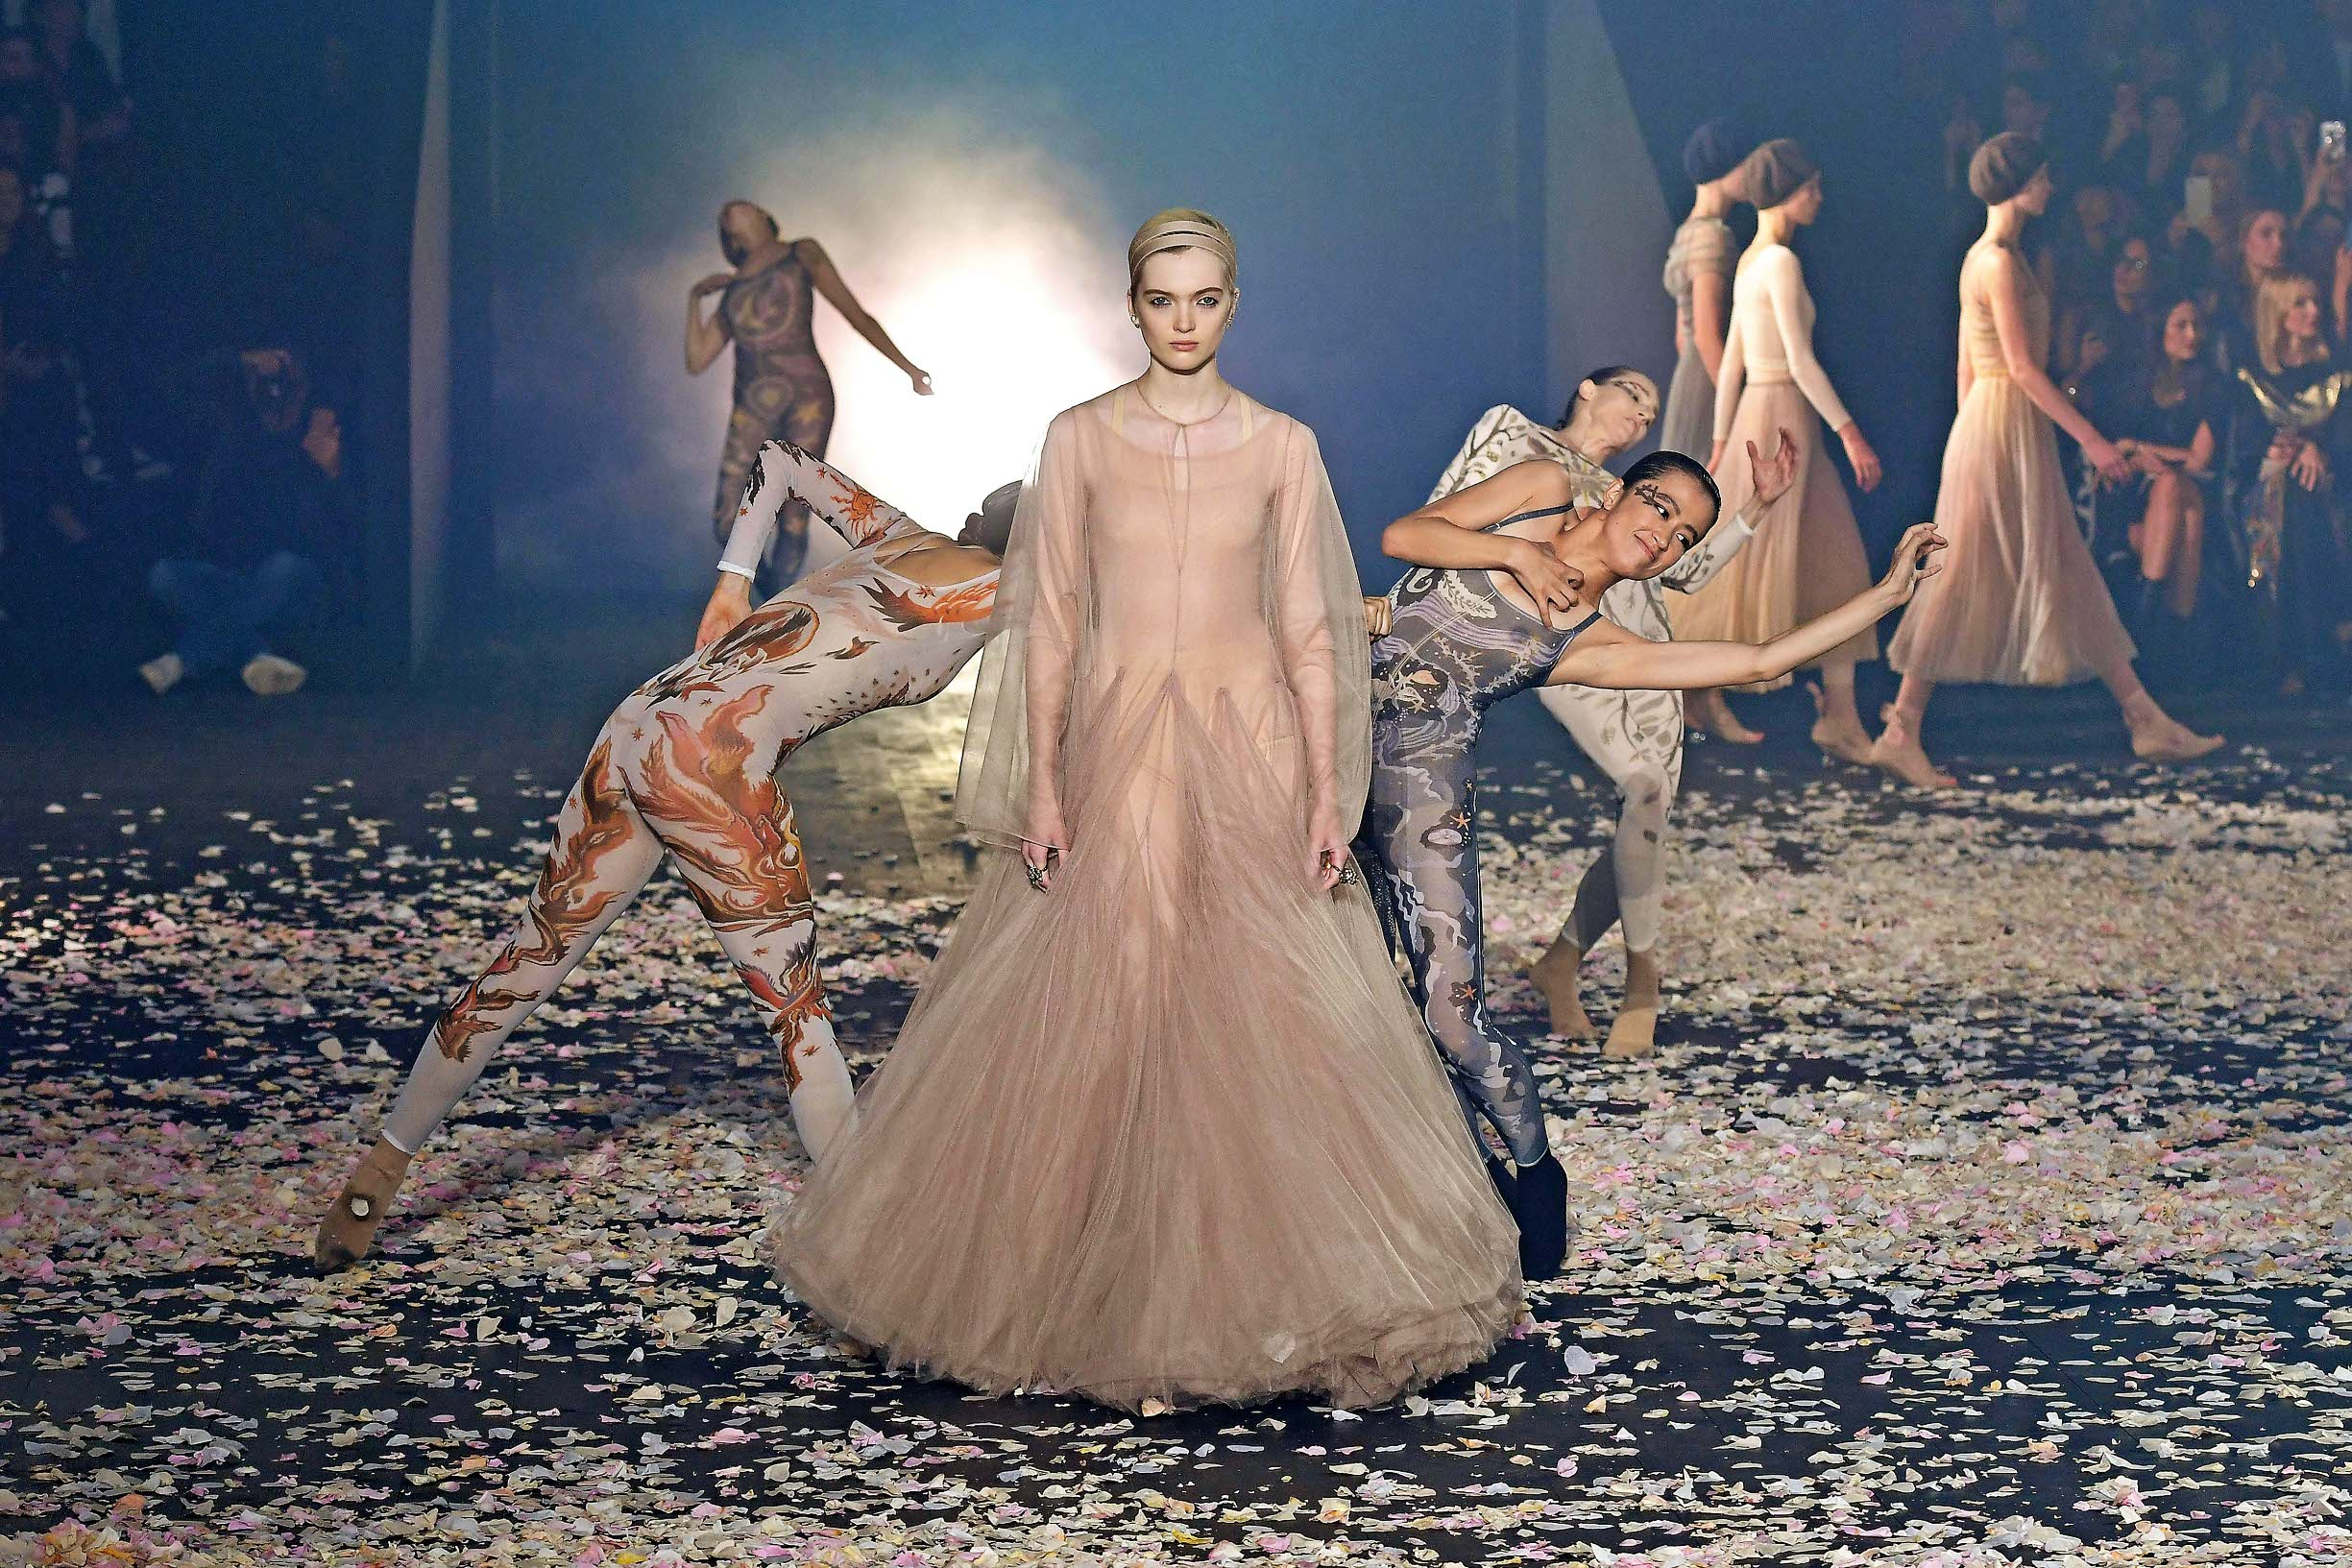 A model walks the runway during the Christian Dior show as part of the Paris Fashion Week Womenswear Spring/Summer 2019 on September 24, 2018 in Paris, France., Image: 388198999, License: Rights-managed, Restrictions: , Model Release: no, Credit line: Profimedia, Abaca Press